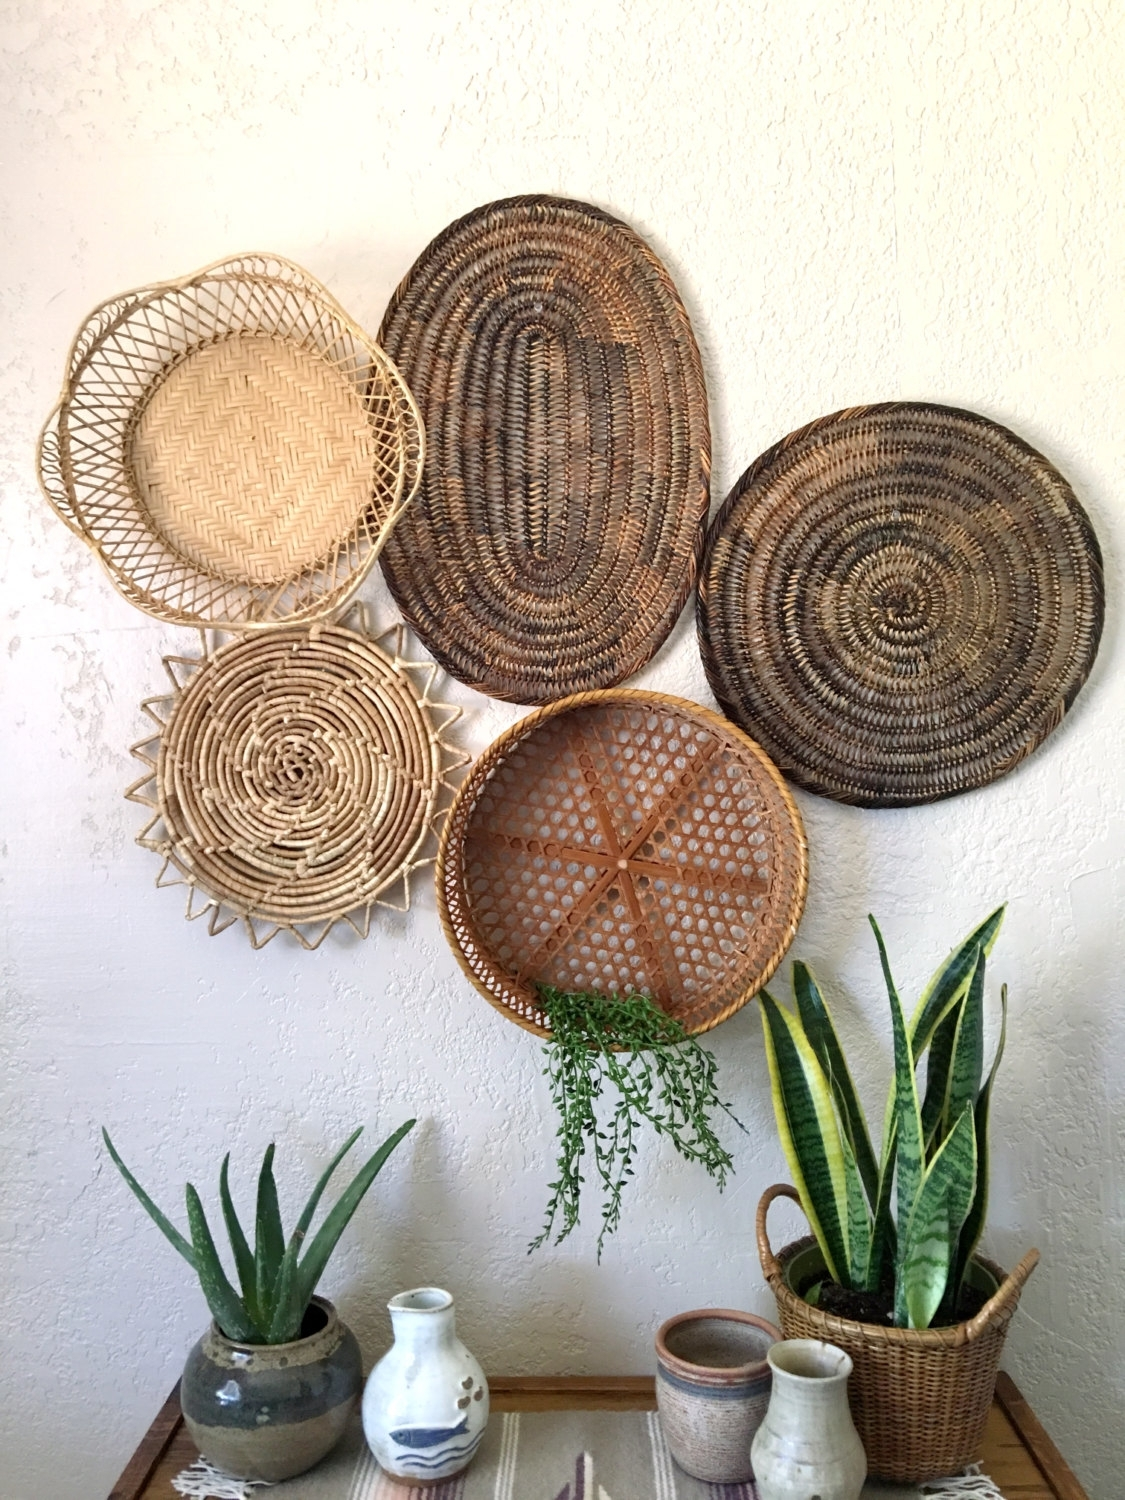 Vintage Oval Brown Woven Wicker Basket / Trivet / Placemat, Woven With Most Popular Woven Basket Wall Art (Gallery 15 of 20)